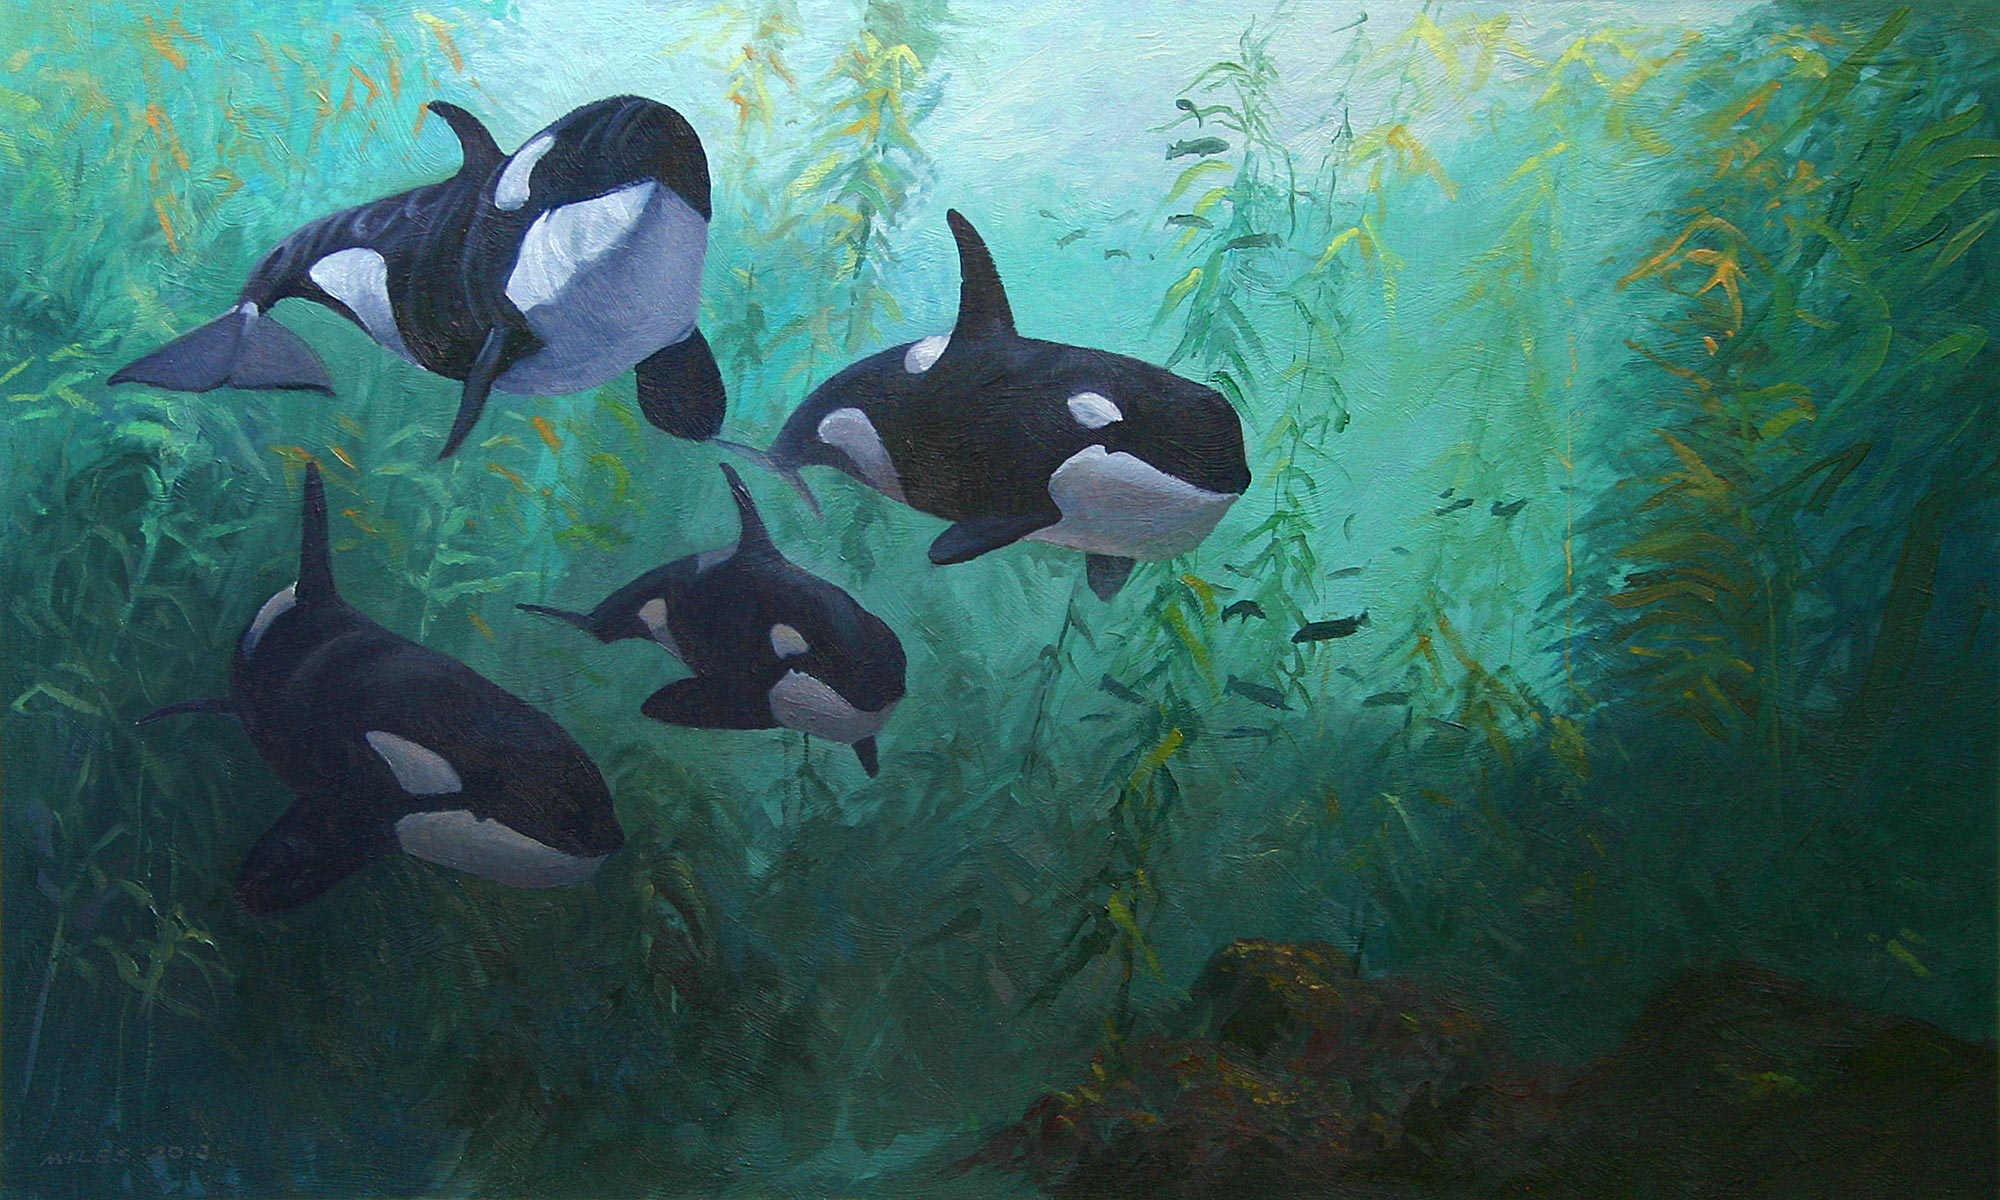 Gerry_Miles_divepaint_underwater_paintings_Cruising_the_Kelp_Forest.jpg